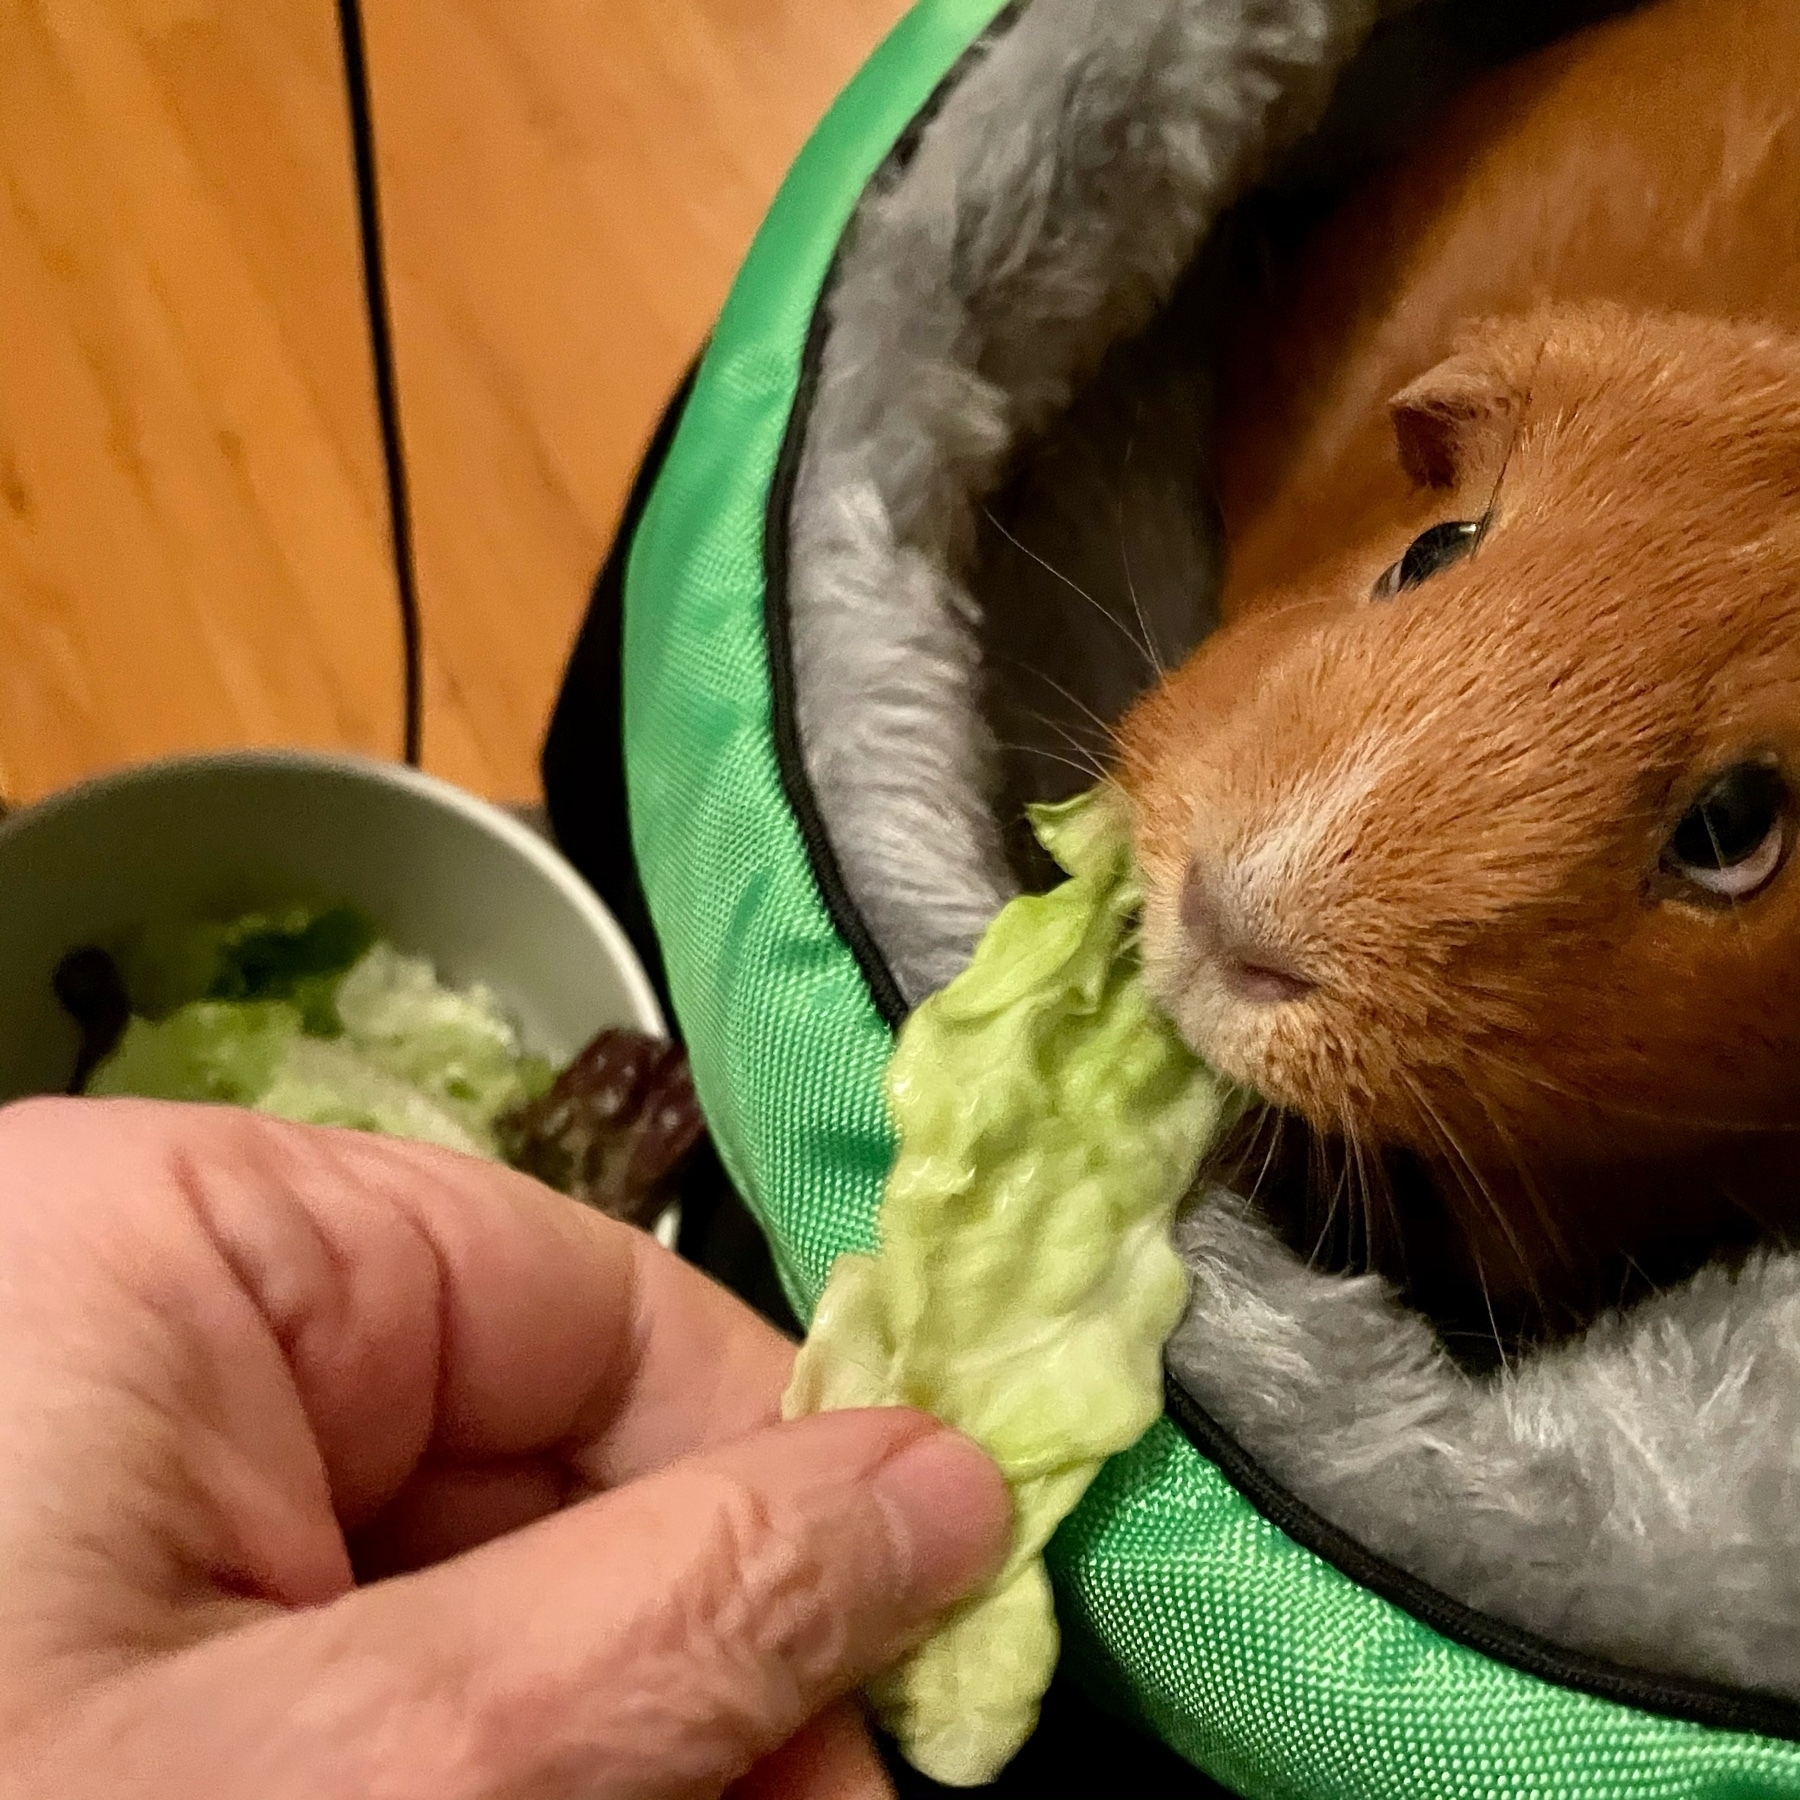 Guinea pig eating lettuce in a cuddle cup